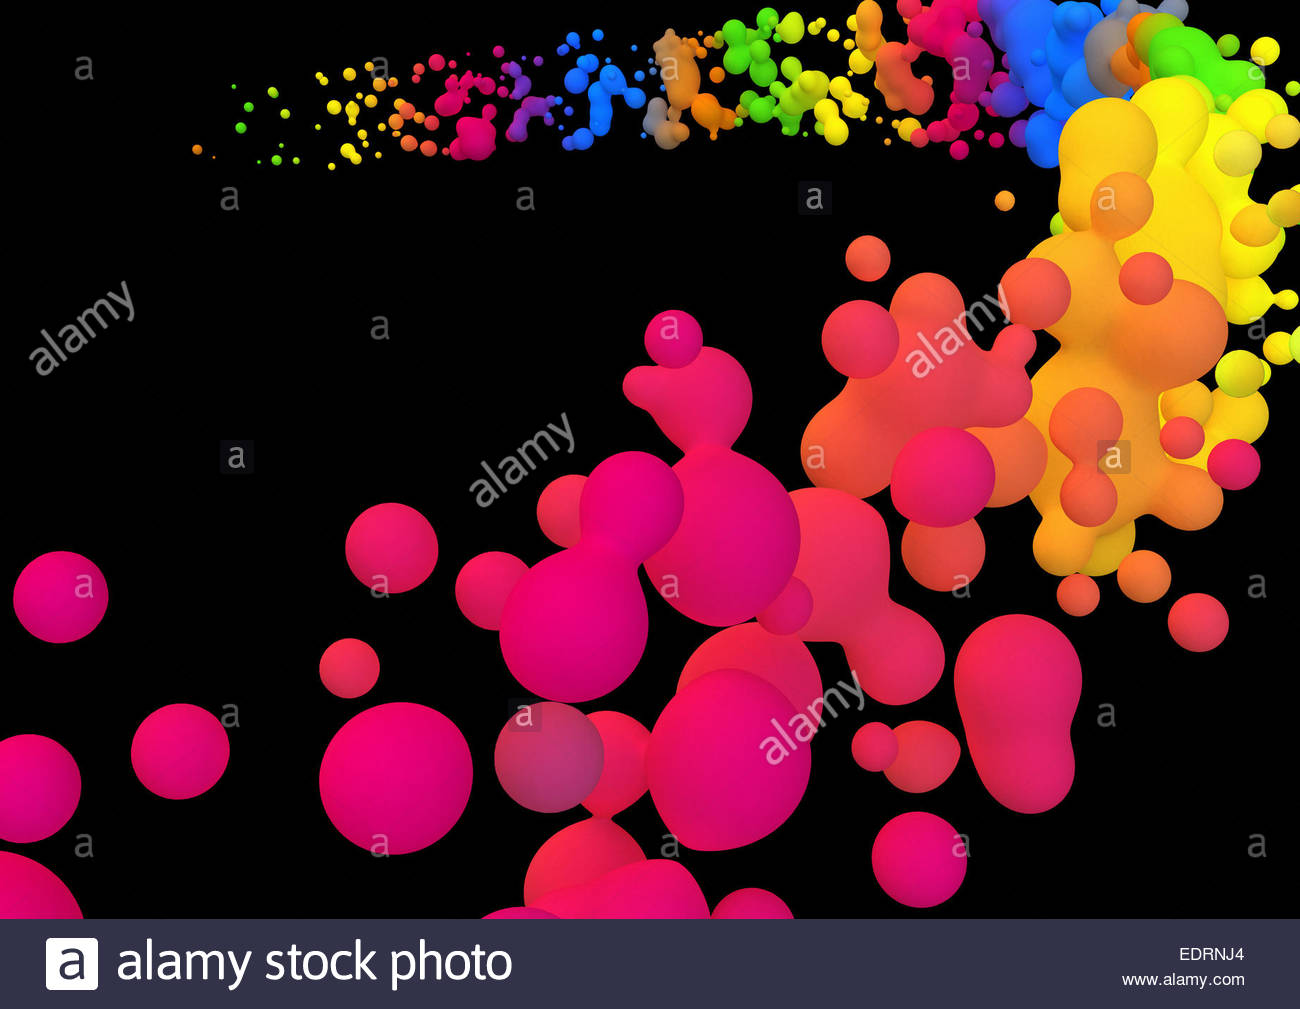 Abstract backgrounds pattern of multicolored neon flowing blobs - Stock Image